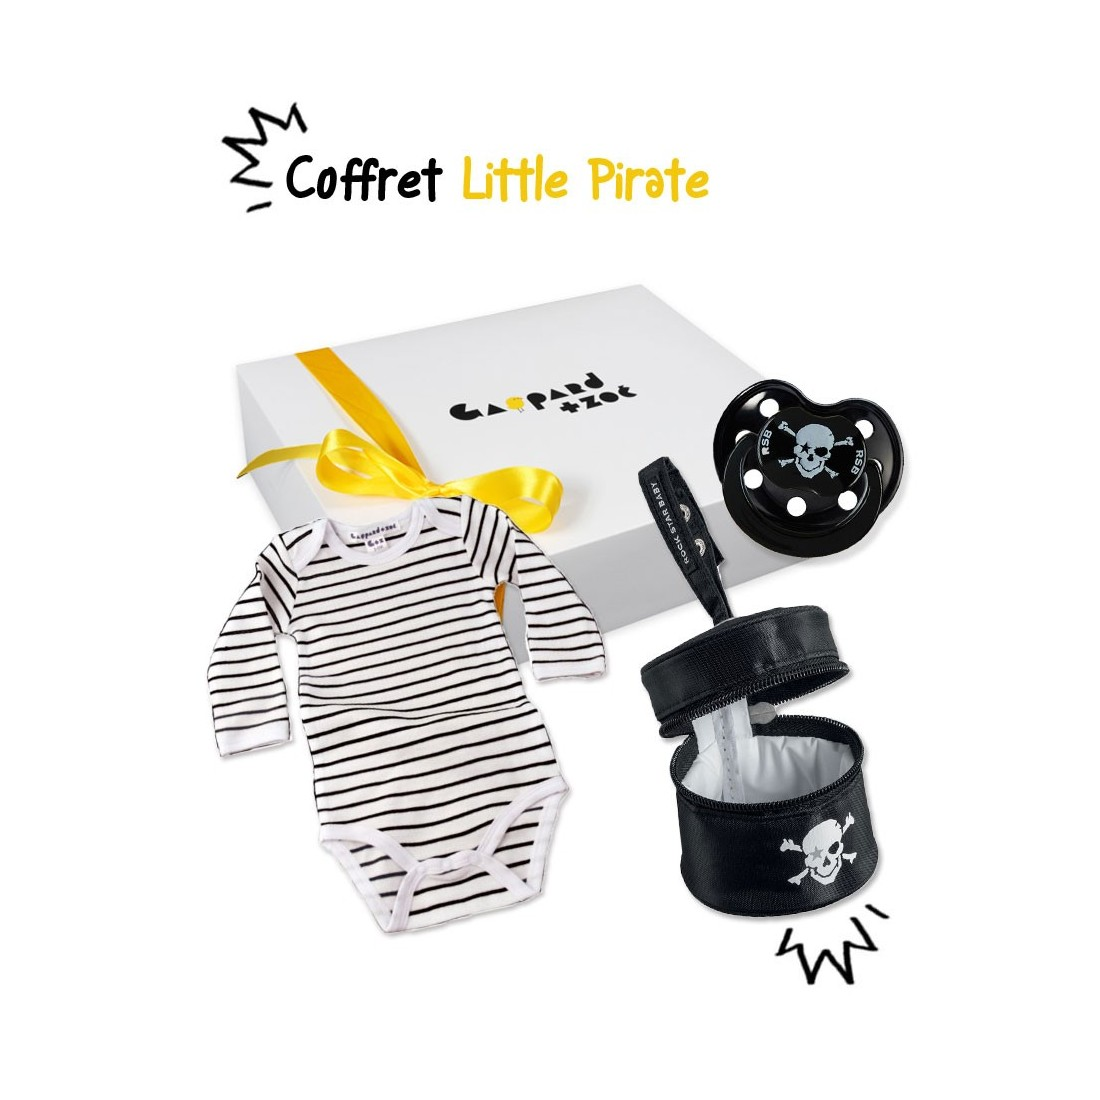 Coffret cadeau bébé original Little pirate